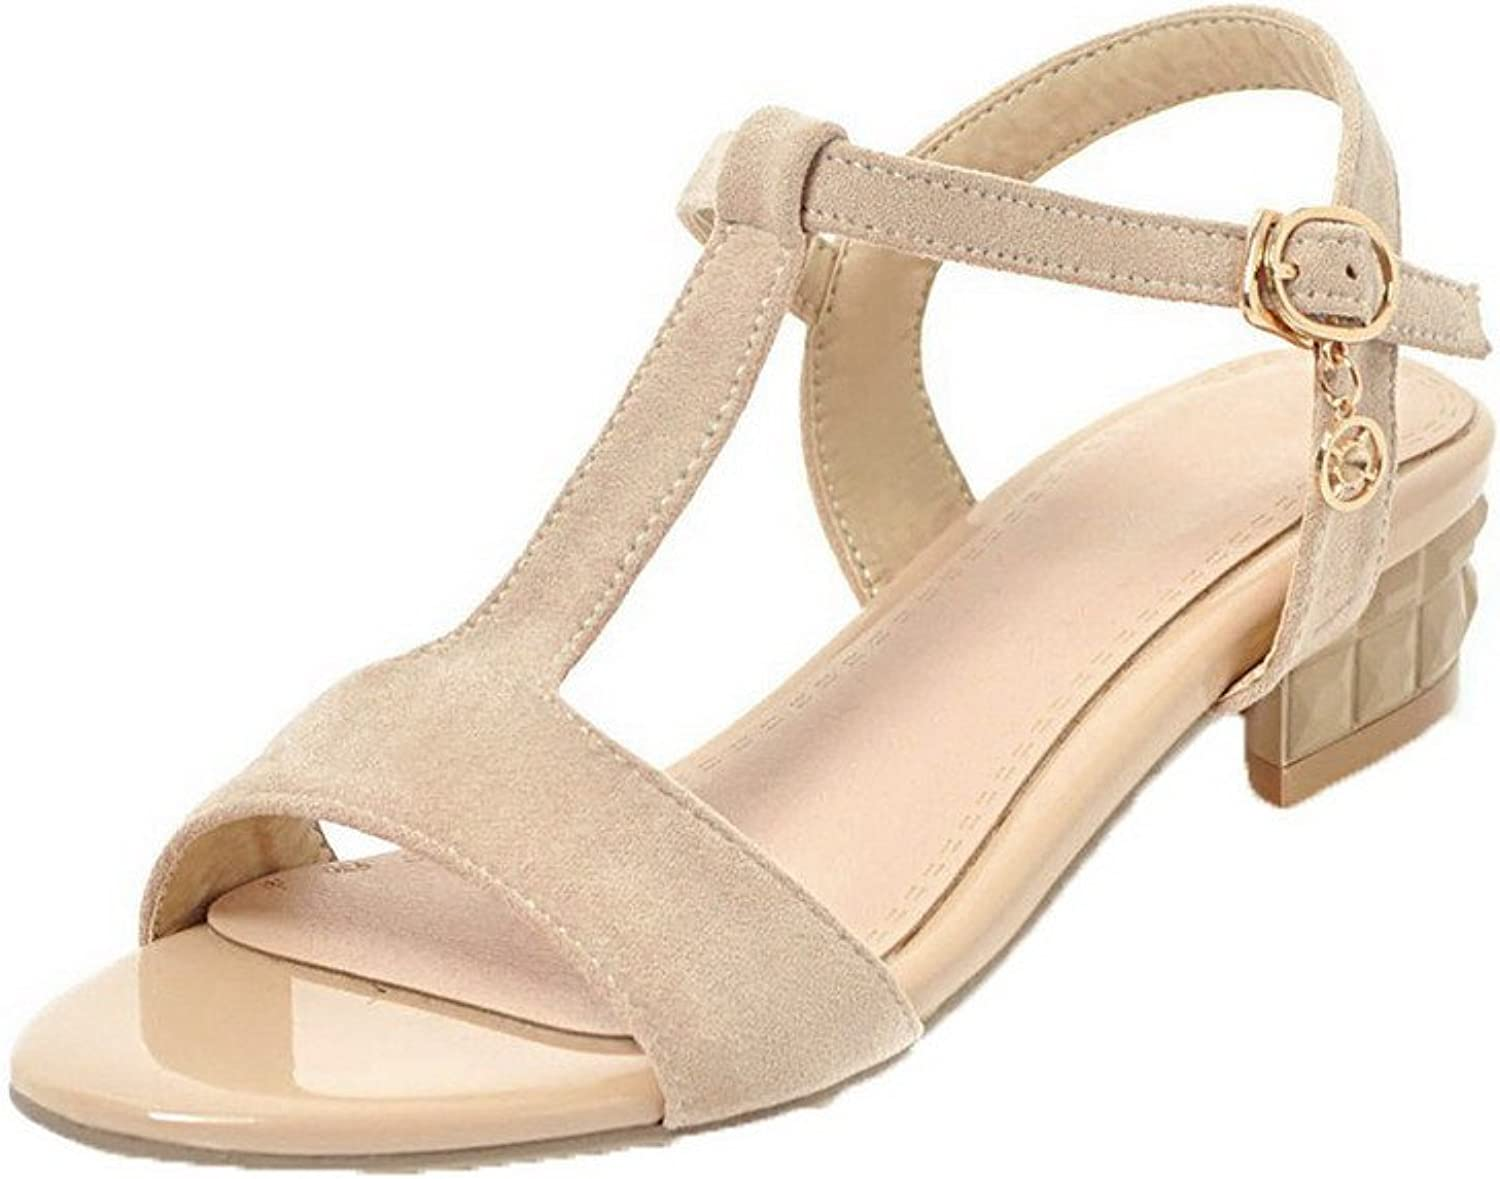 AllhqFashion Women's Buckle Low-Heels Imitated Suede Solid Open-Toe Sandals